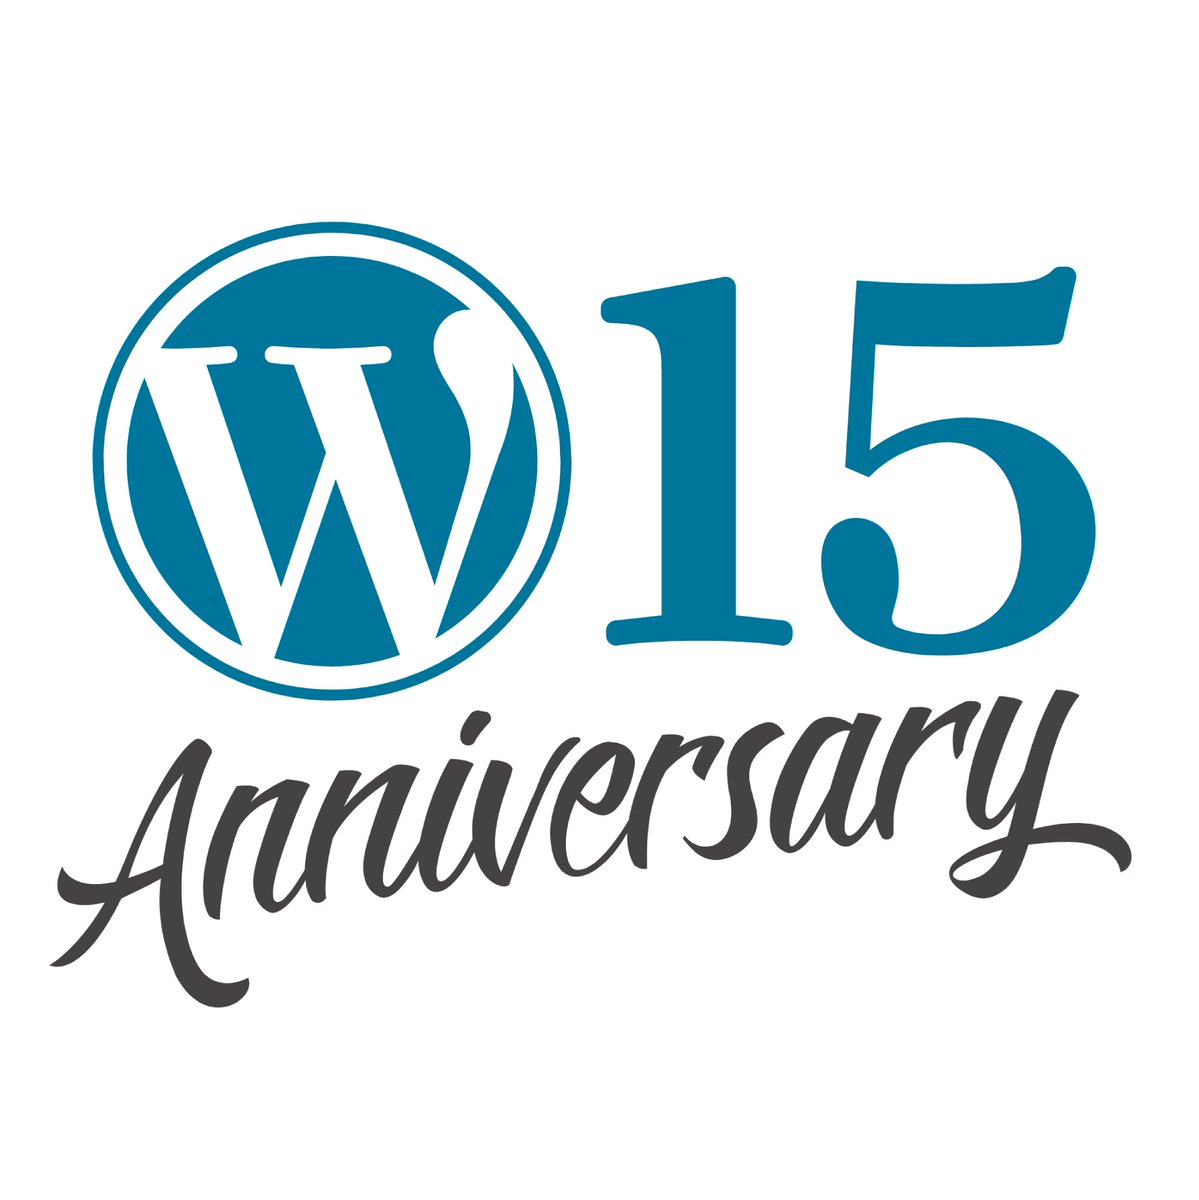 Today, we are celebrating the WordPress 15th anniversary ????????  https://t.co/kFmy1QiHNN #wp15 https://t.co/A2vDED5qSv